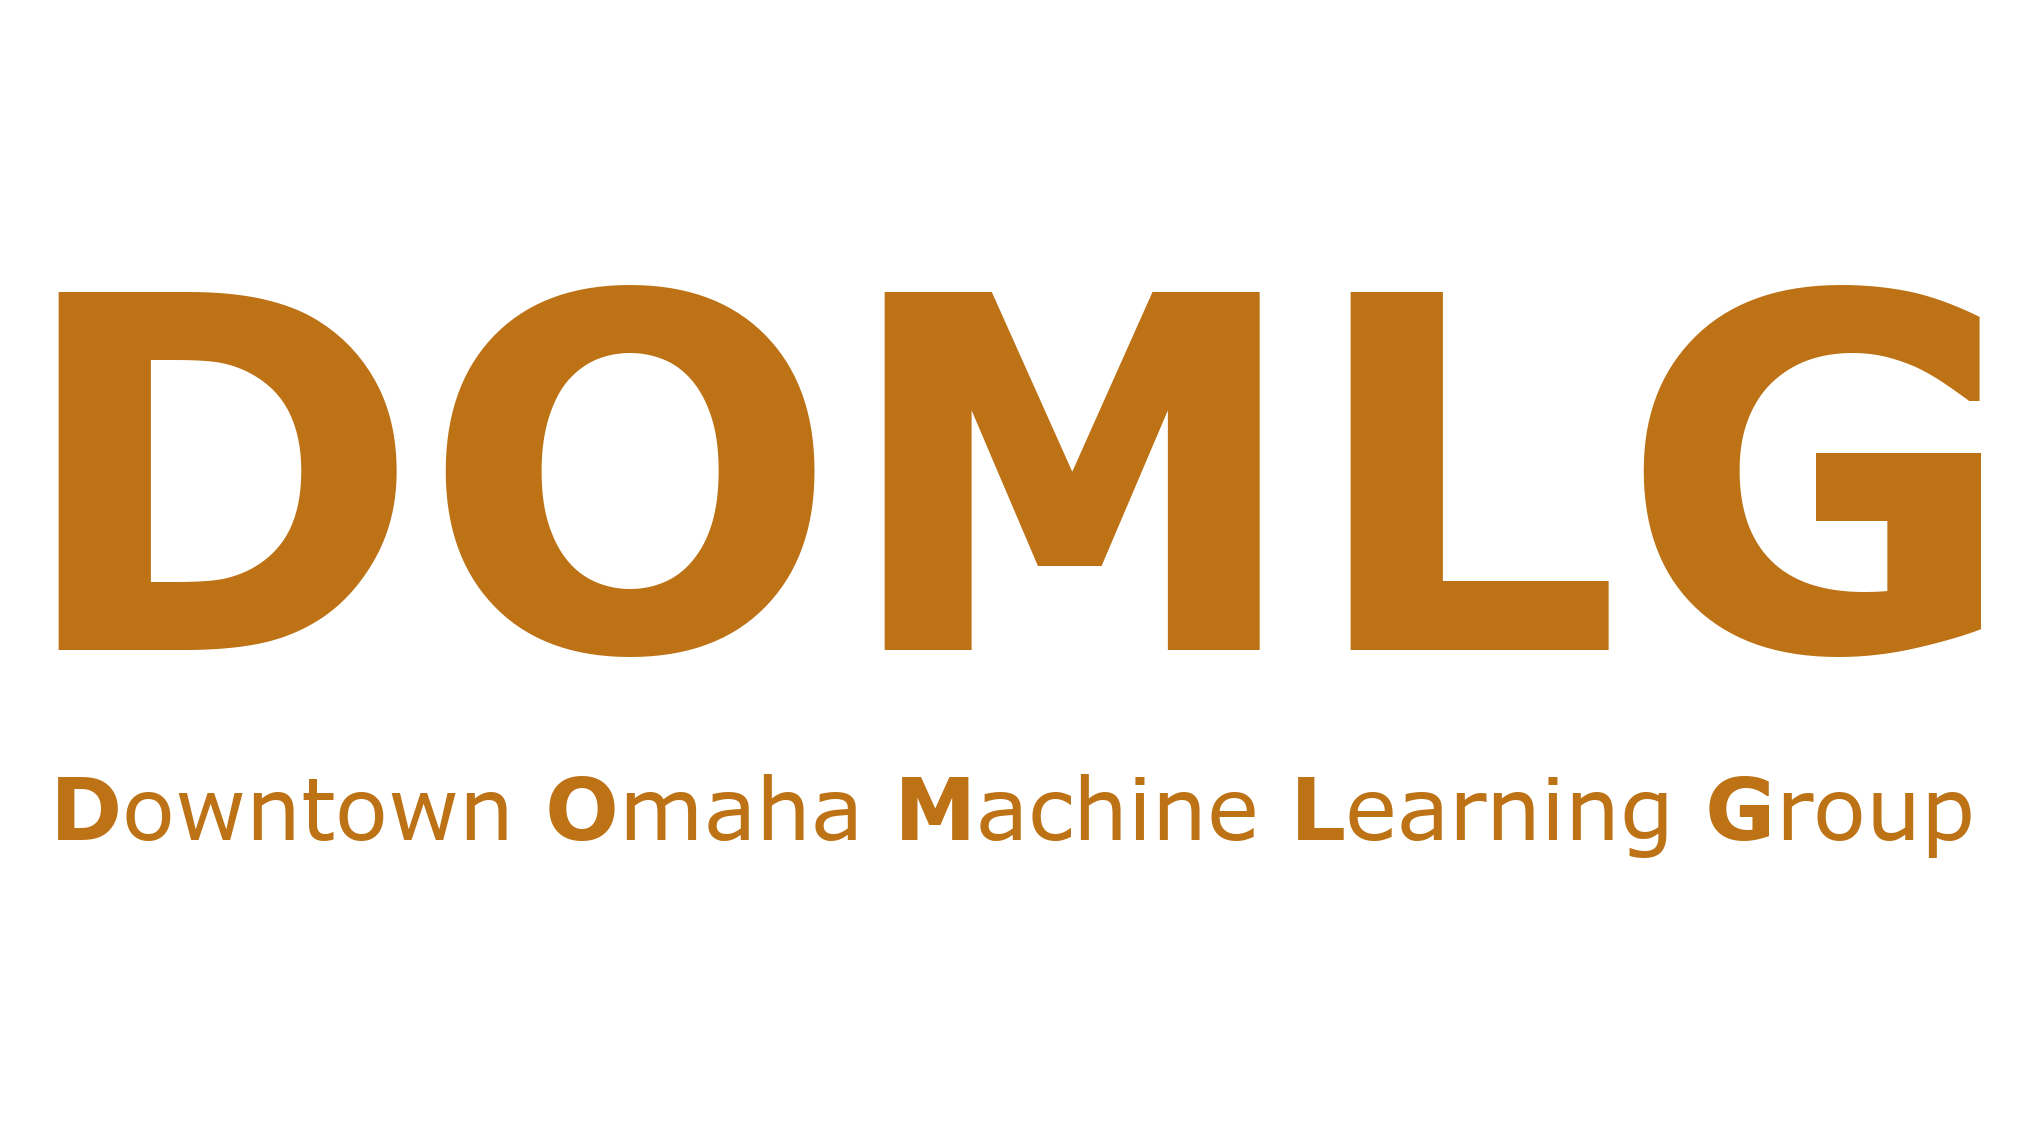 Downtown Omaha Machine Learning Group